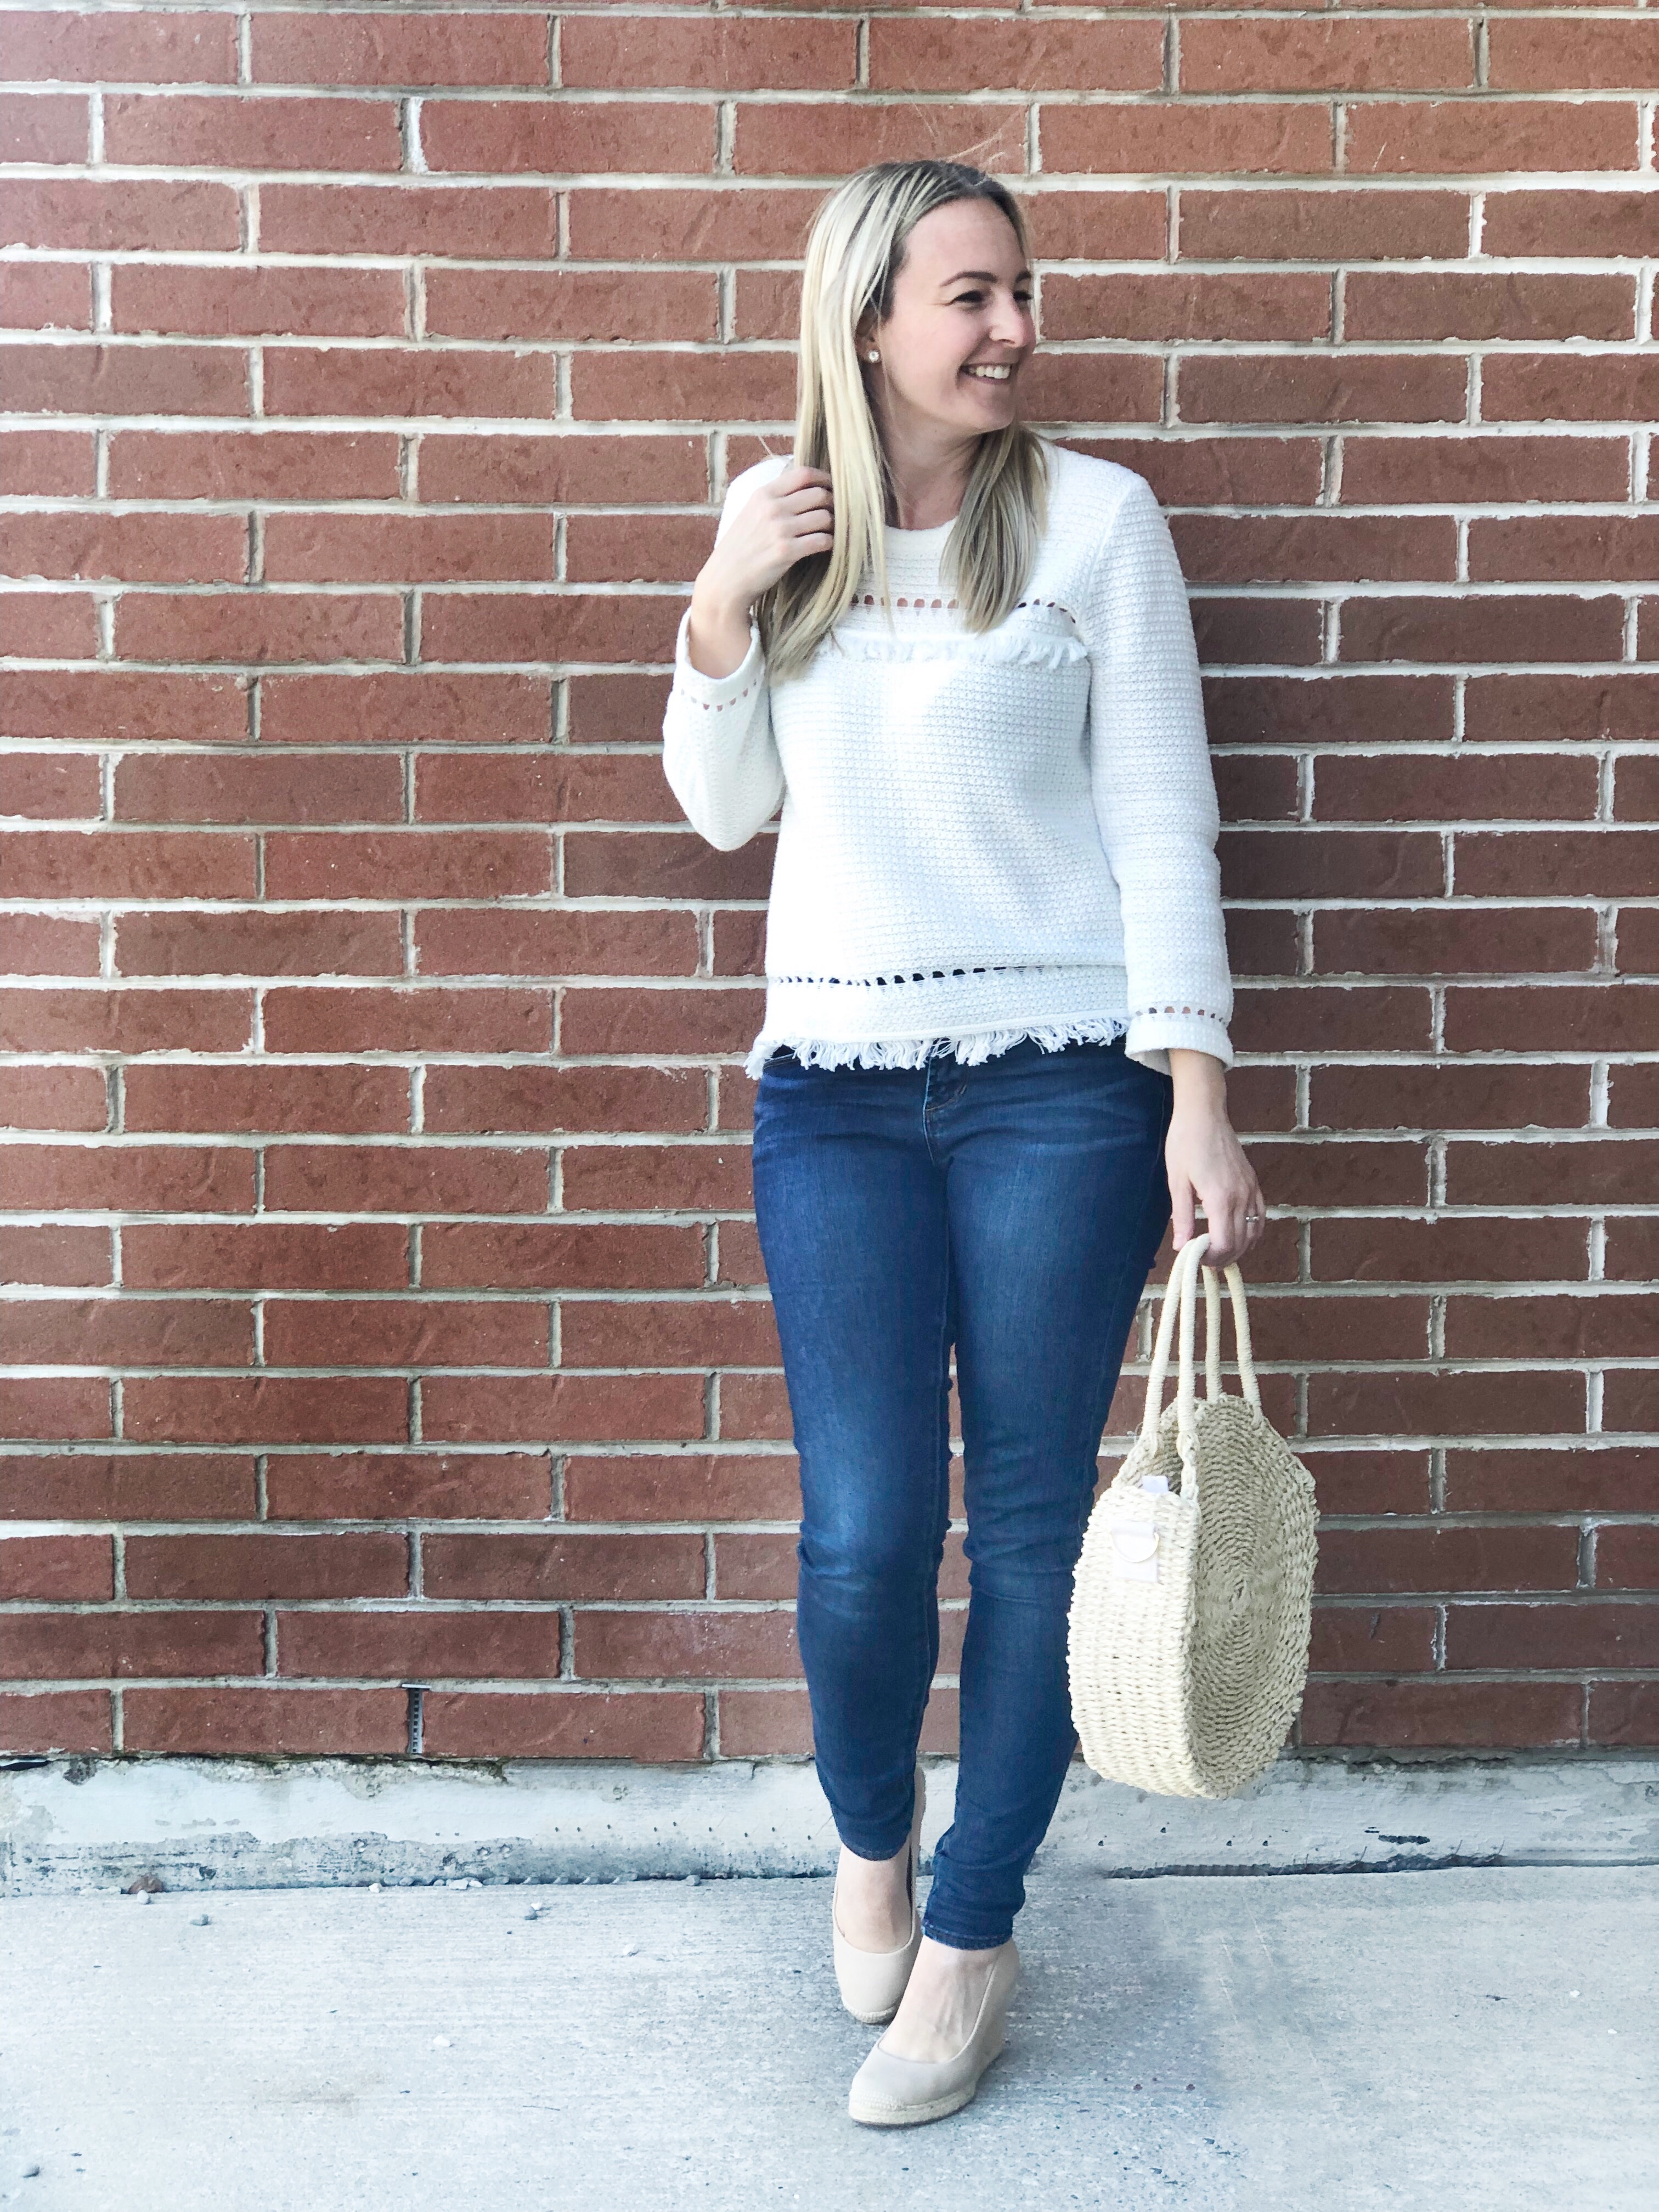 J Crew White sweater- Spring look on livin' life with style